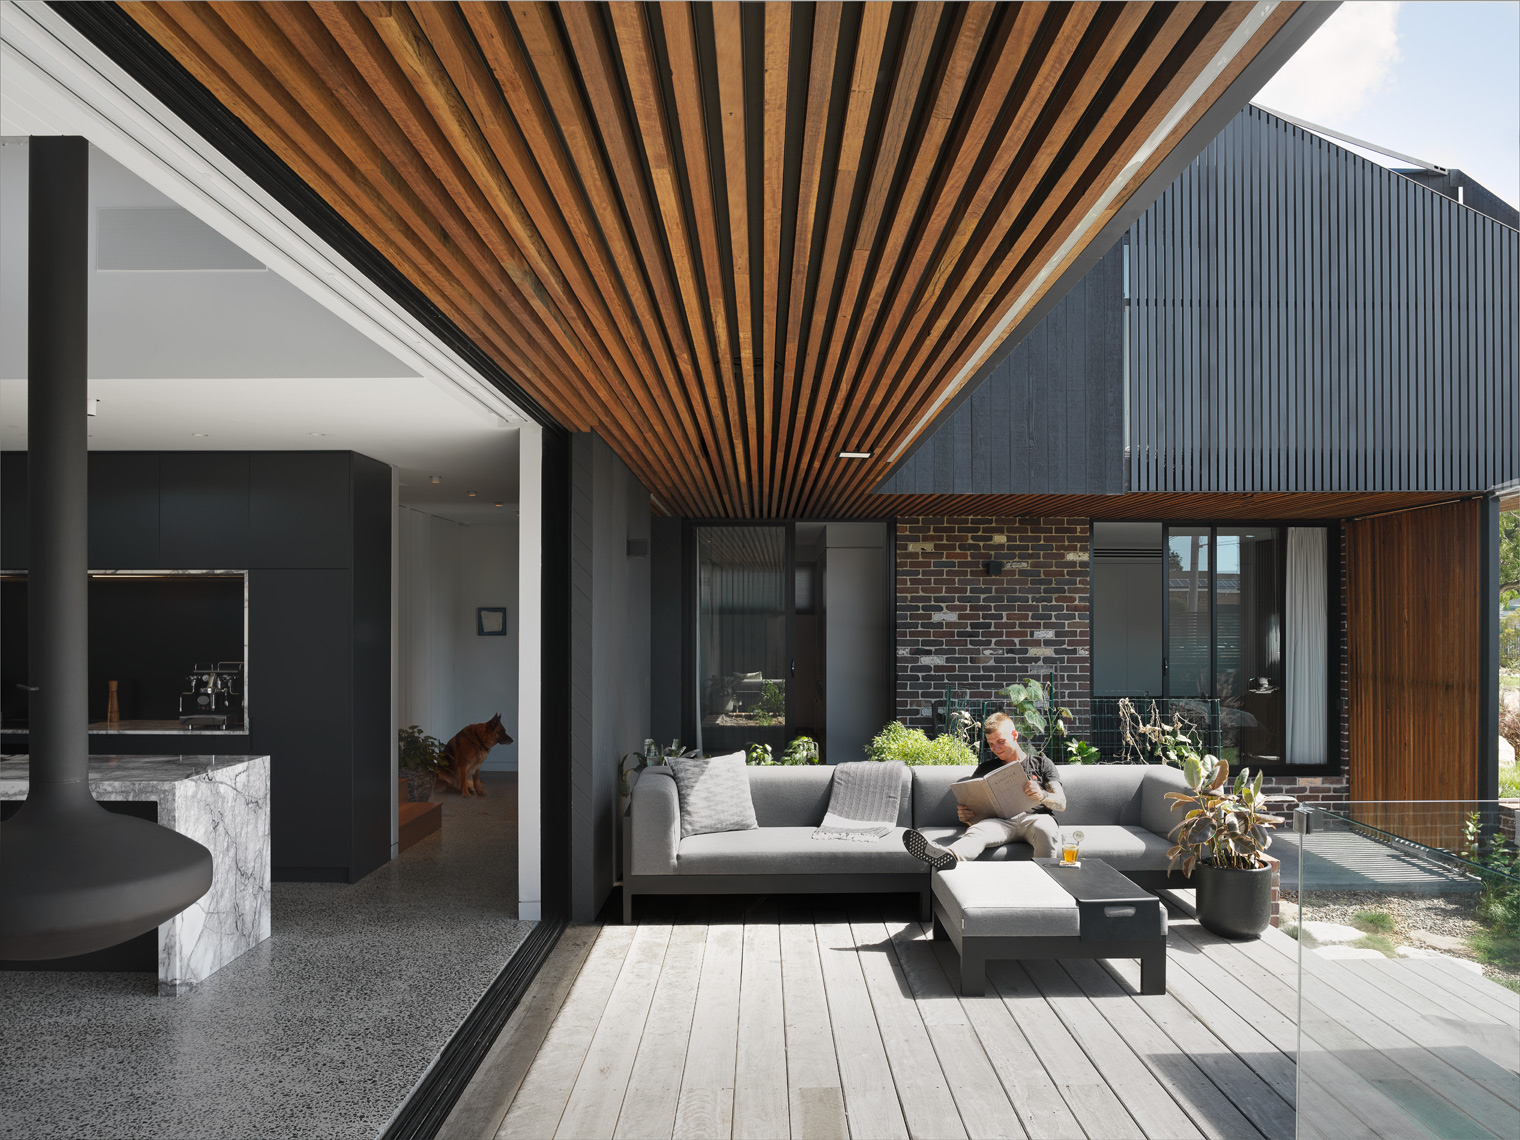 luke-butterly-2019-Jacobson-House-by-Anderson-Architecture-Sydney-NSW-3